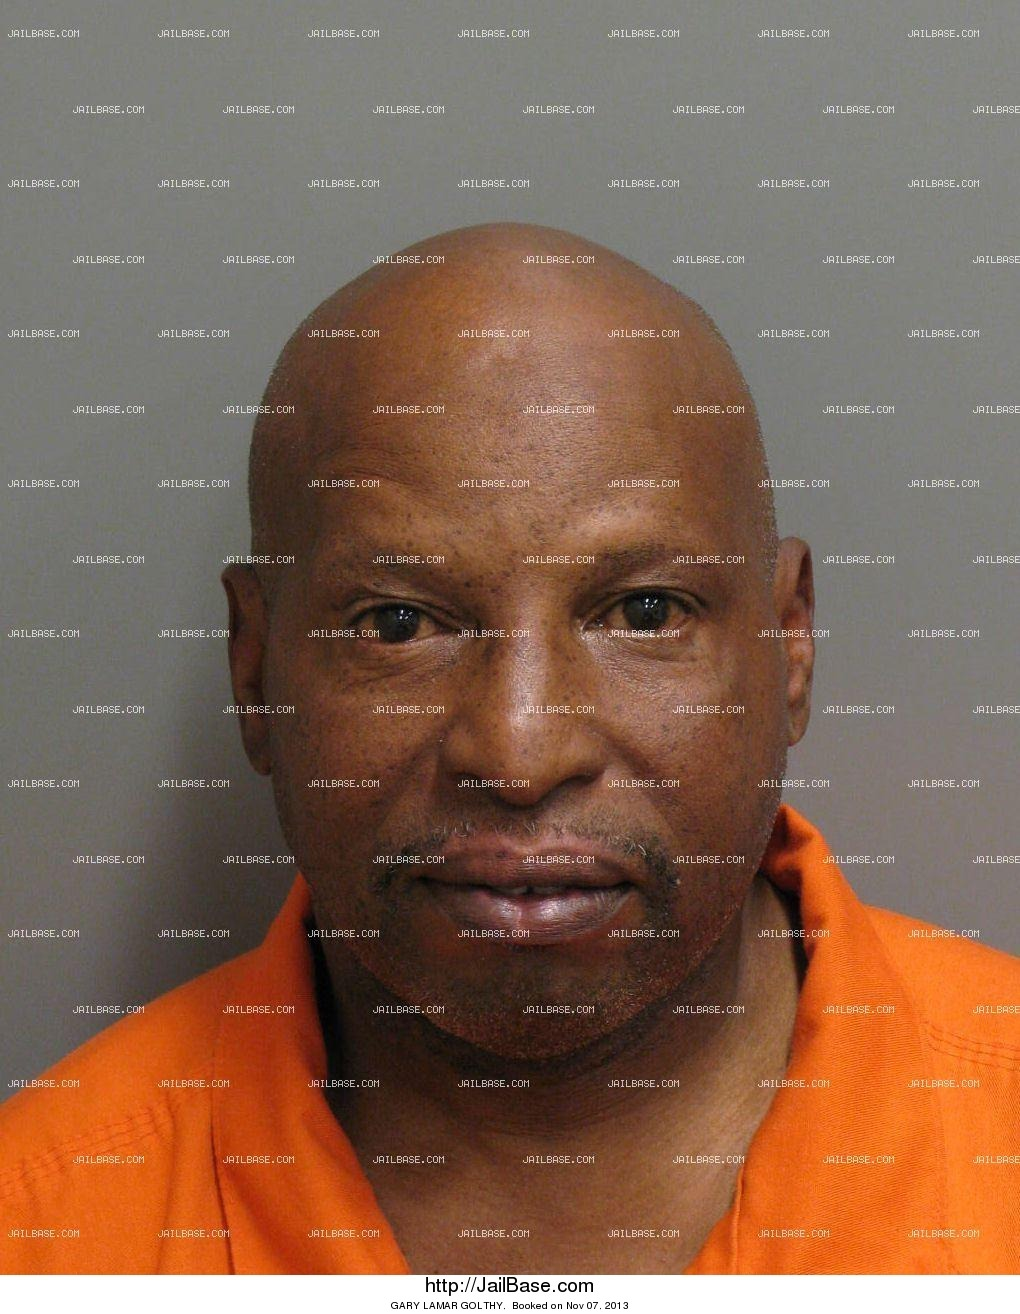 gary lamar golthy mugshot picture